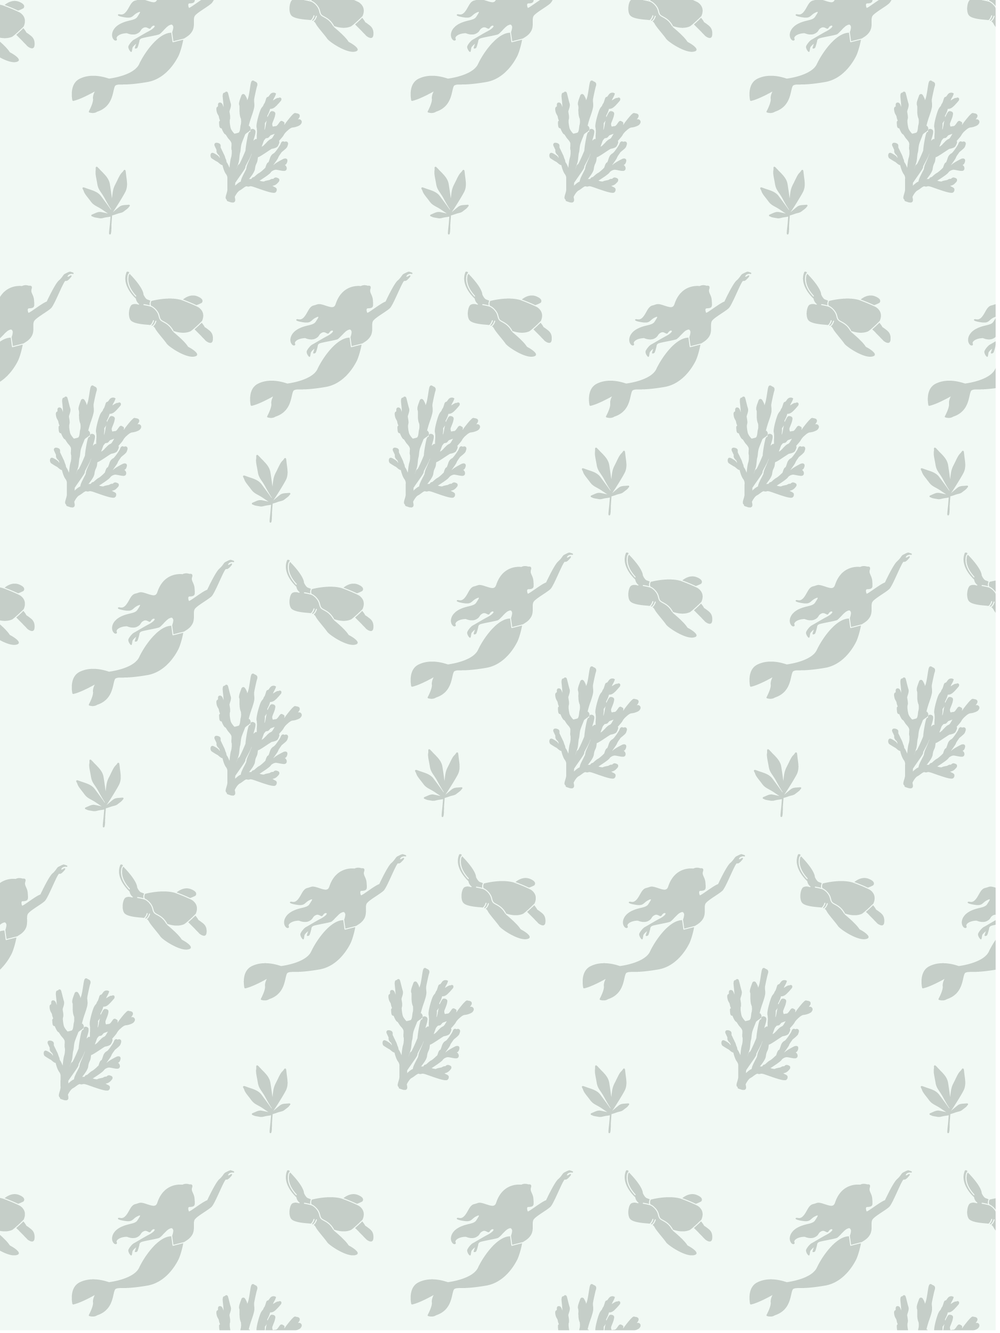 Seaweed Pattern | Trout + Taylor www.troutandtaylor.com